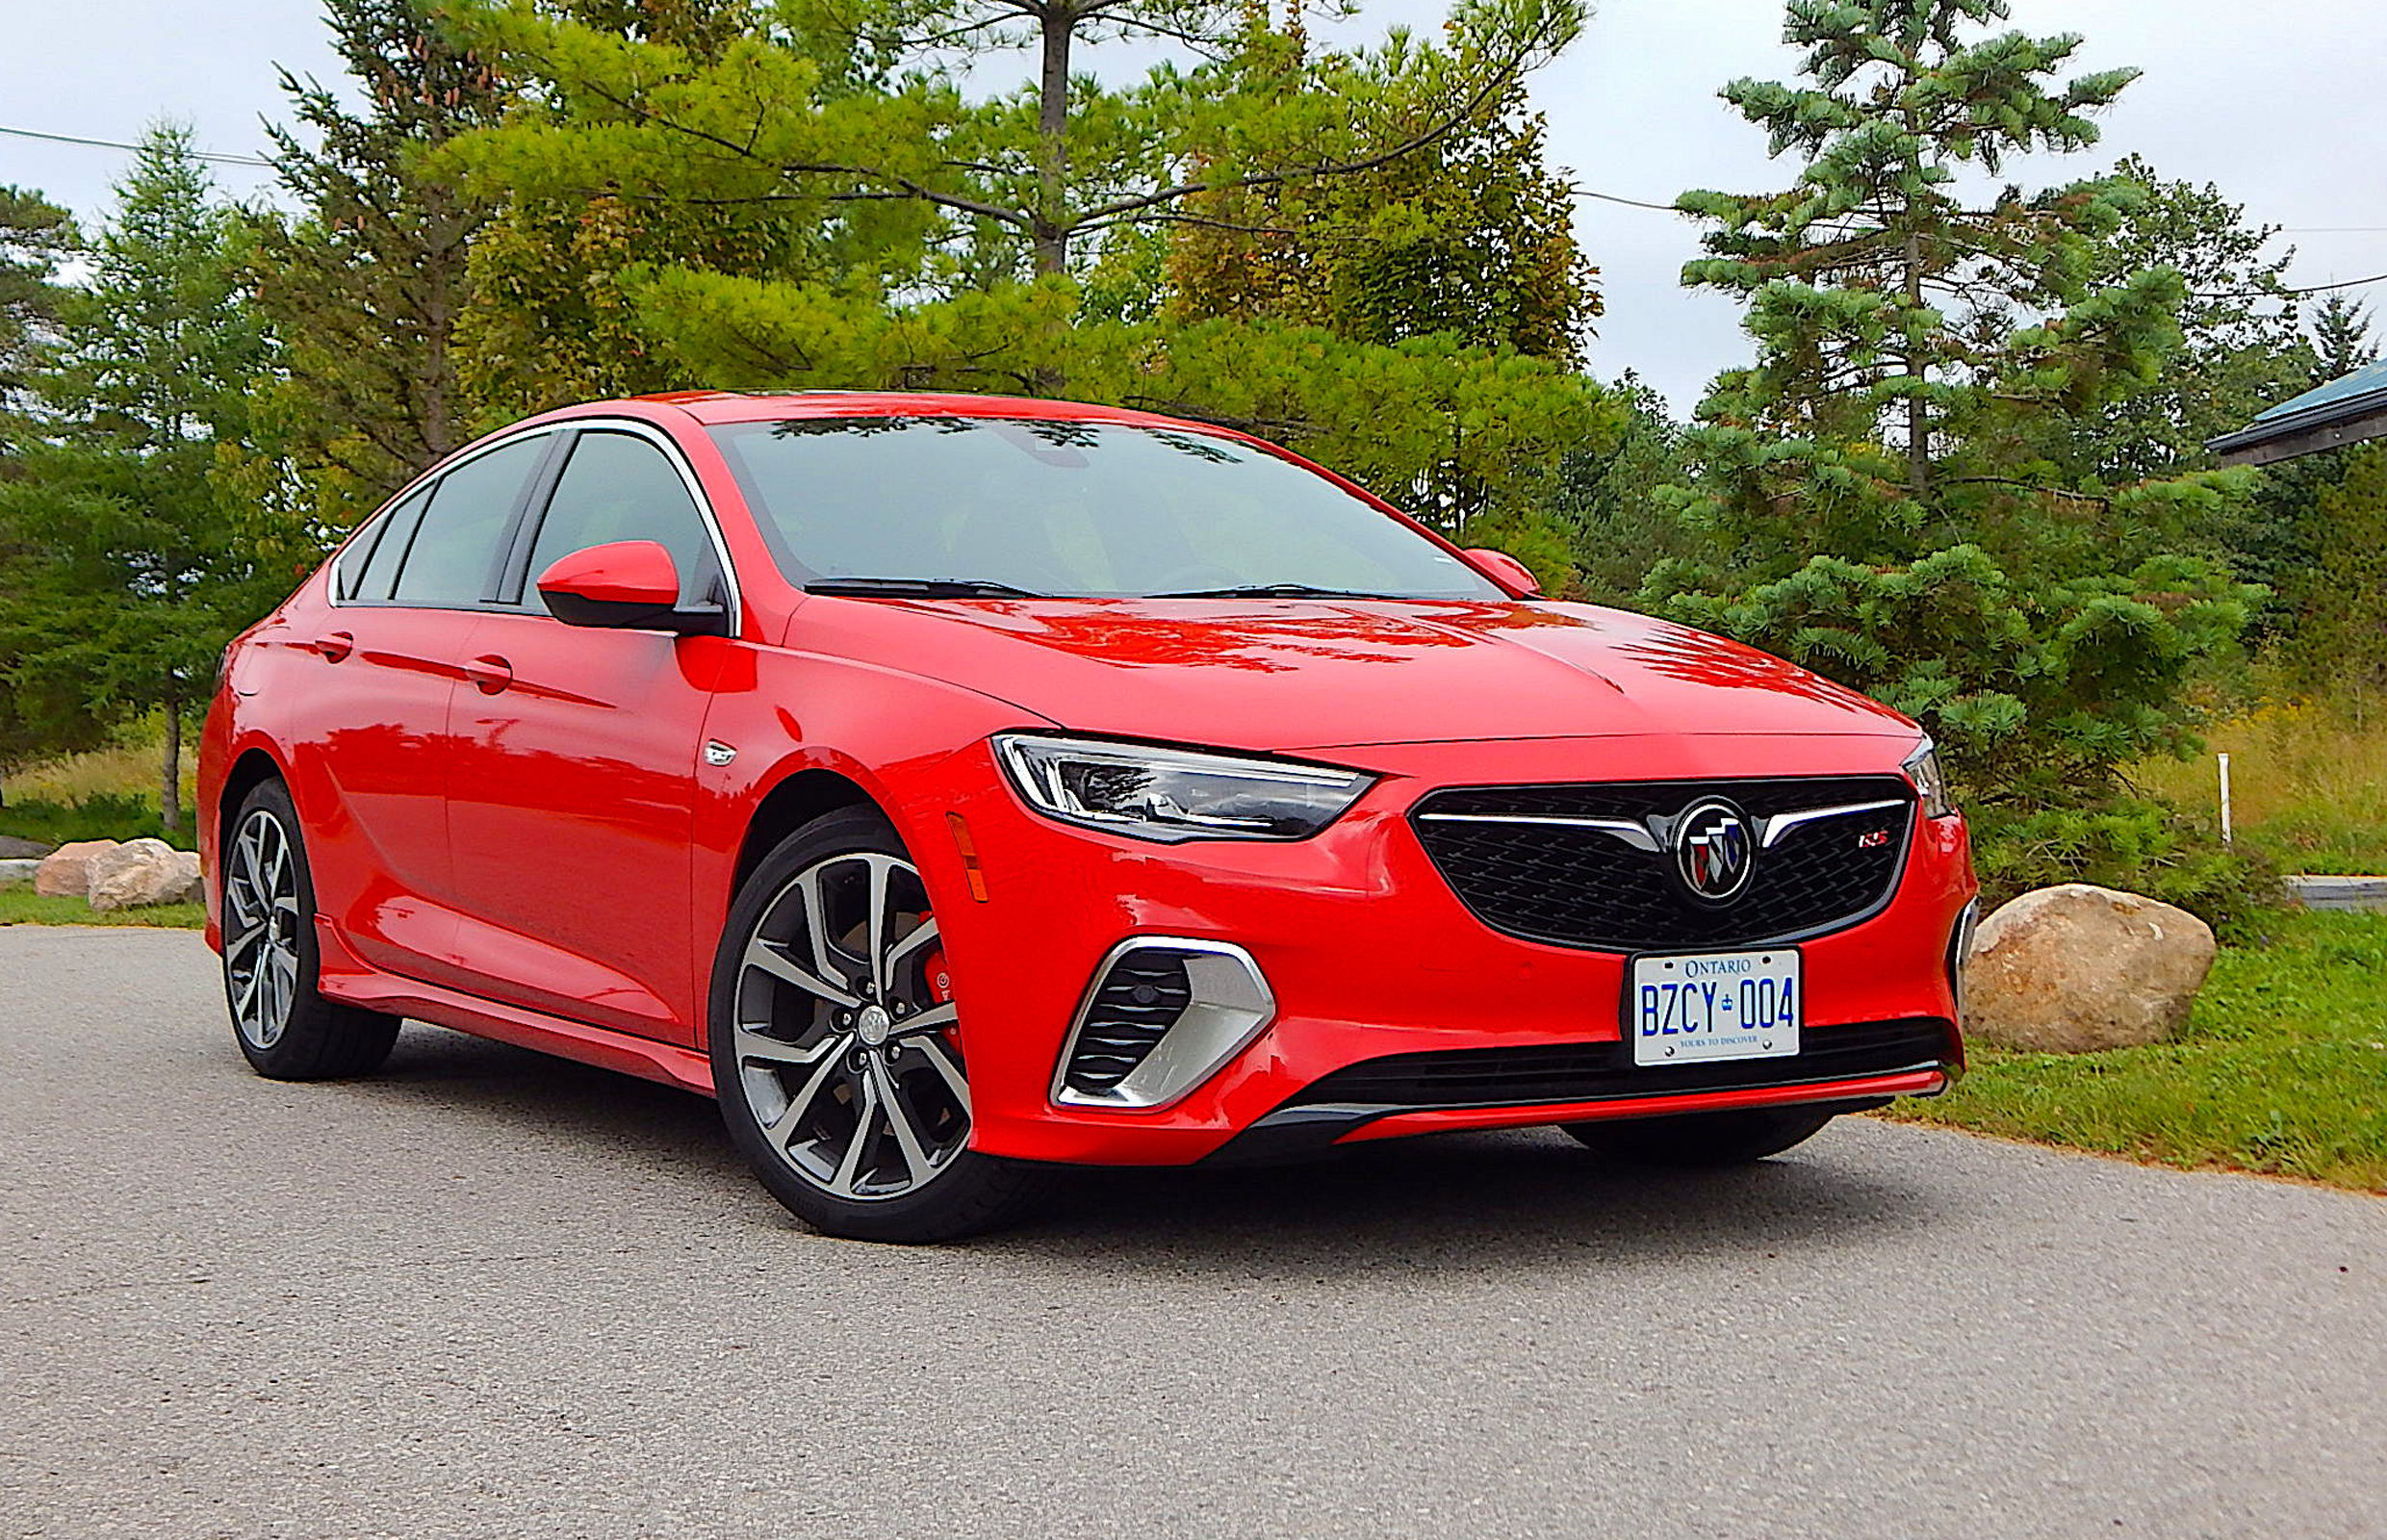 Buick Regal 2020 - View Specs, Prices, Photos & More | Driving 2021 Buick Regal Awd, Dimensions, Price